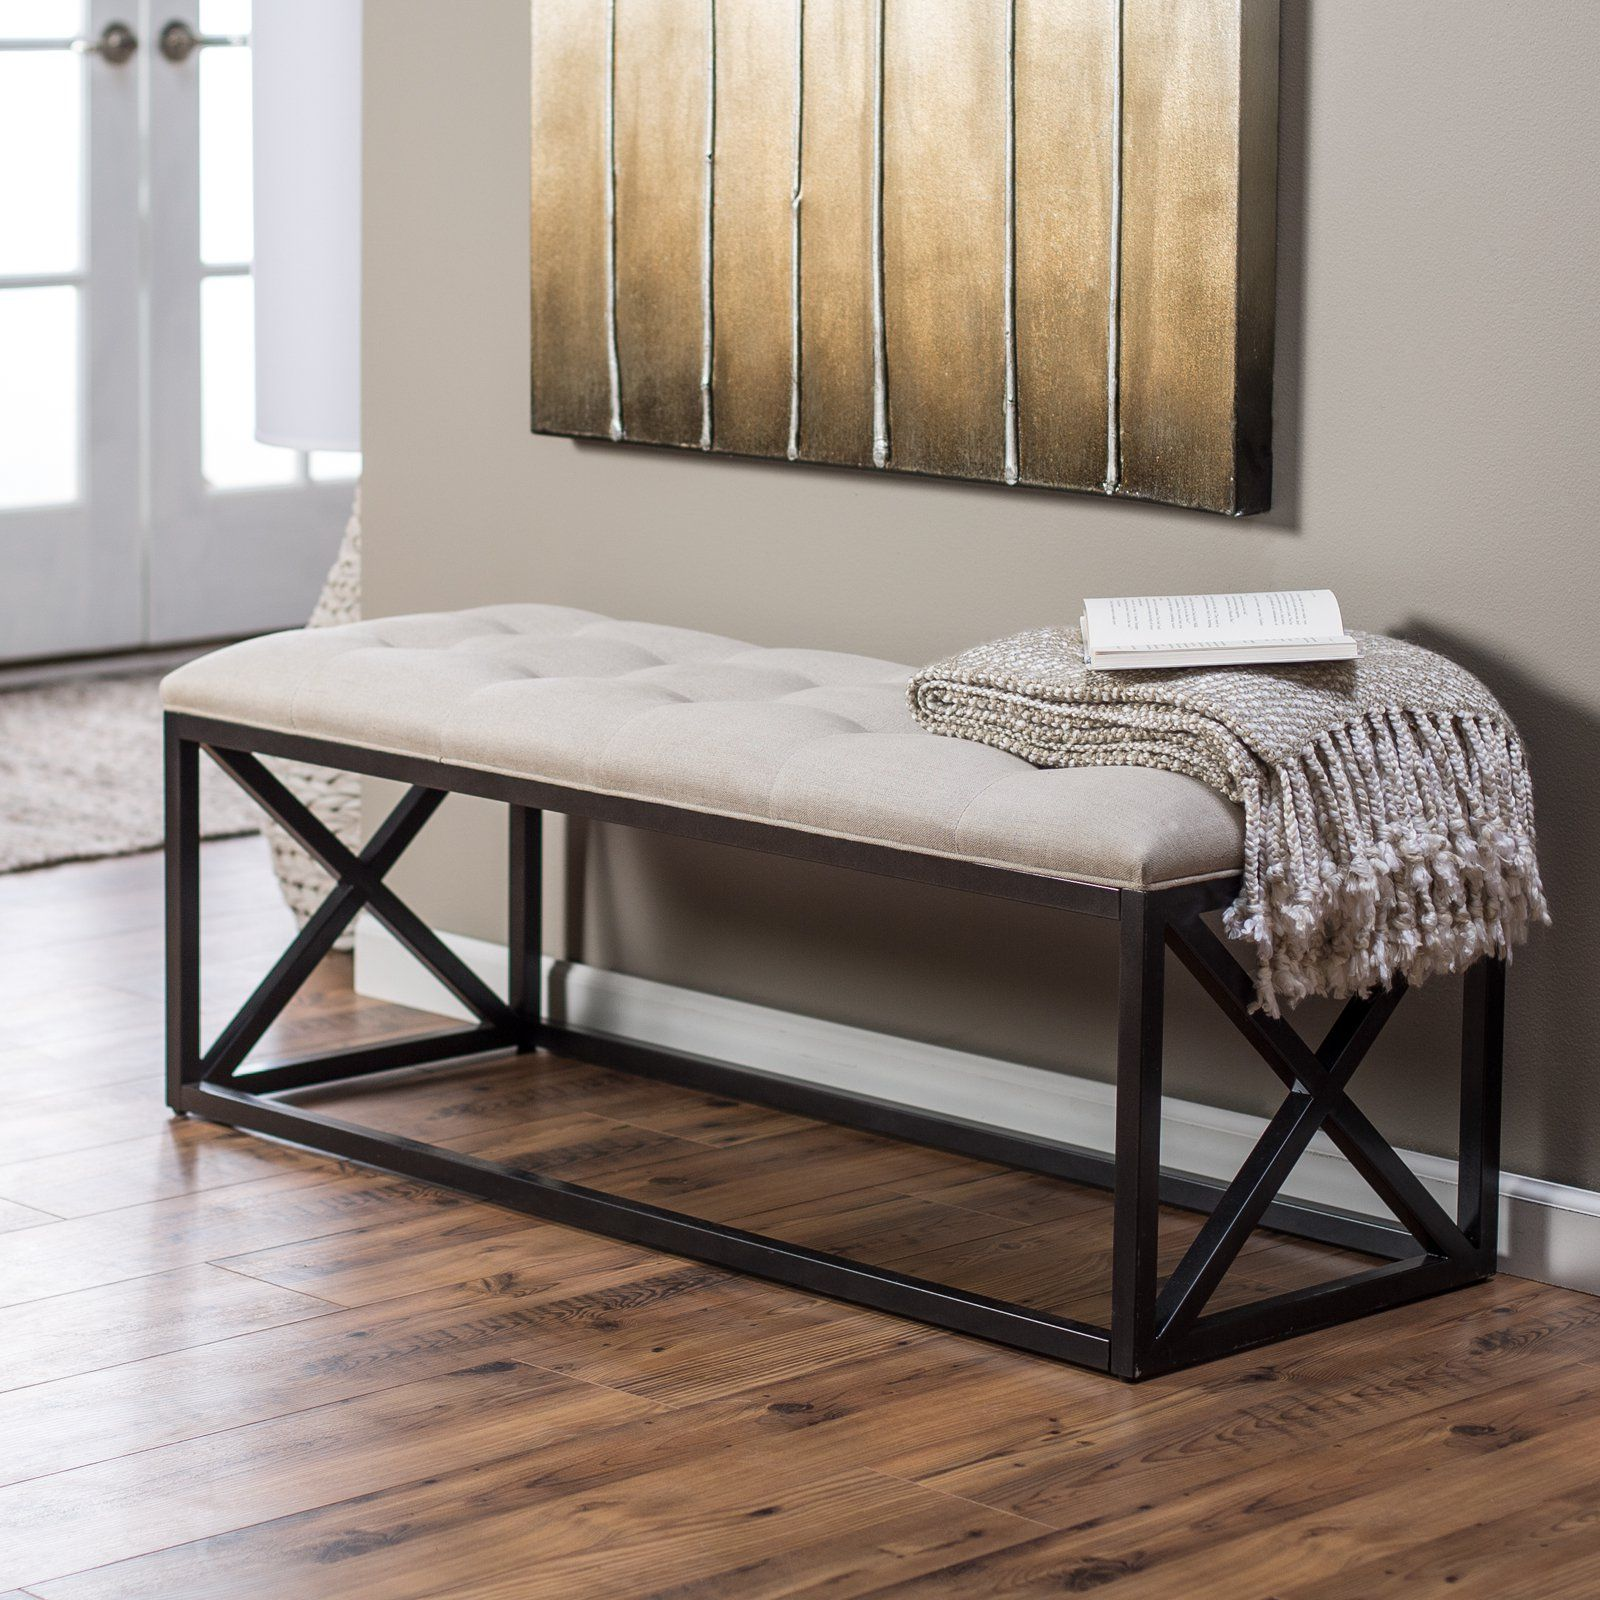 Belham Living Grayson Tufted Entryway Bench Storage Bench Bedroom Indoor Bench Storage Bench Seating